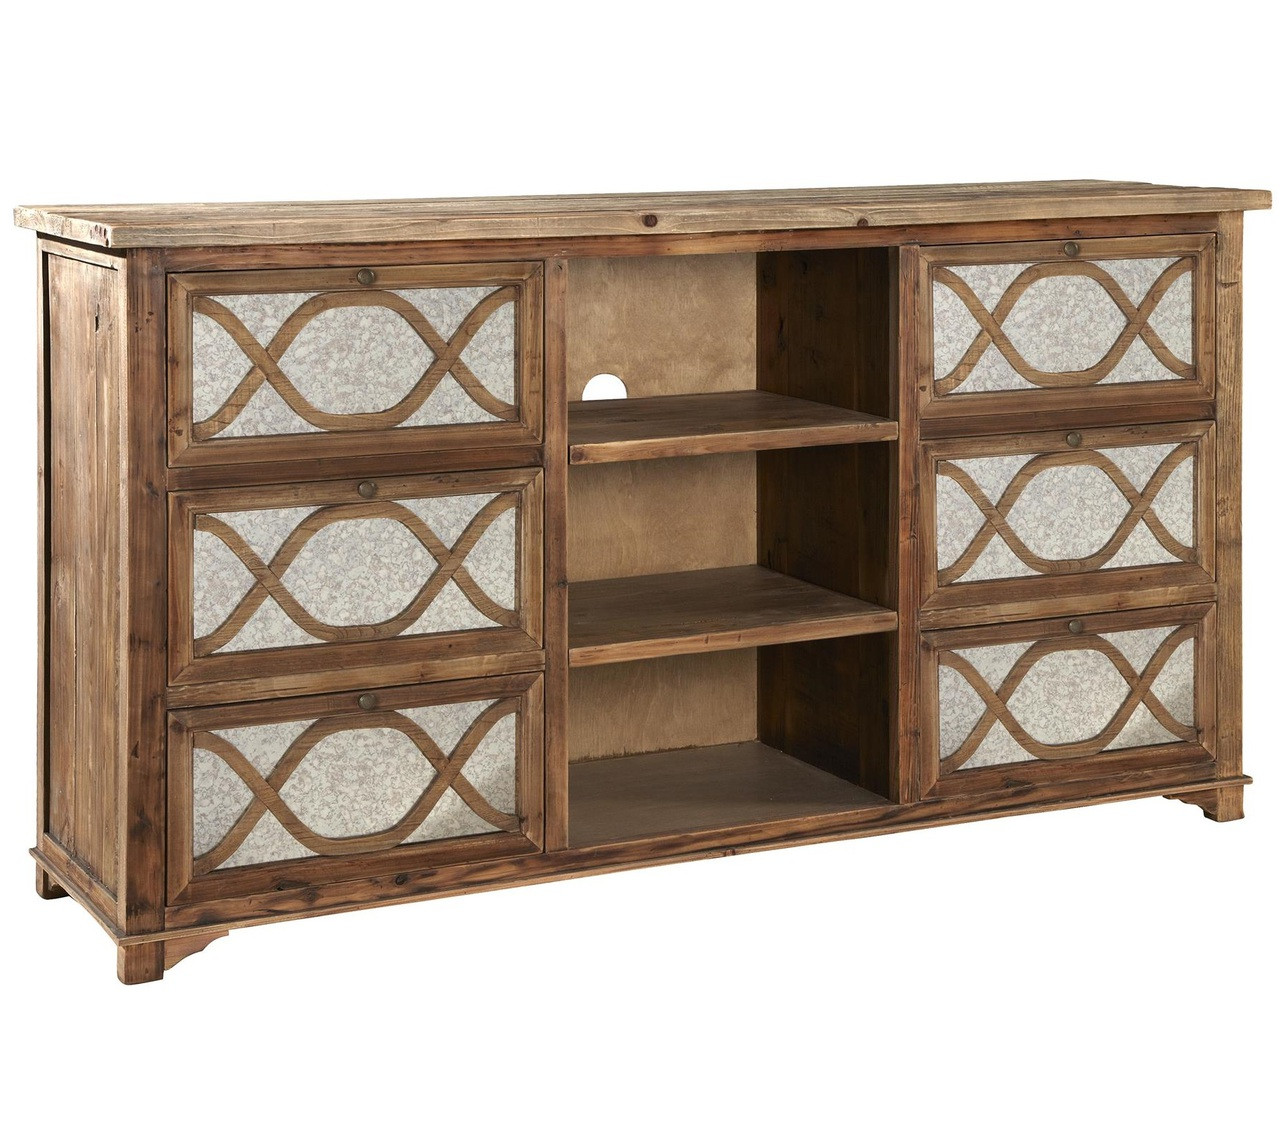 wood and mirrored furniture. french lattice reclaimed wood mirrored media cabinet and furniture